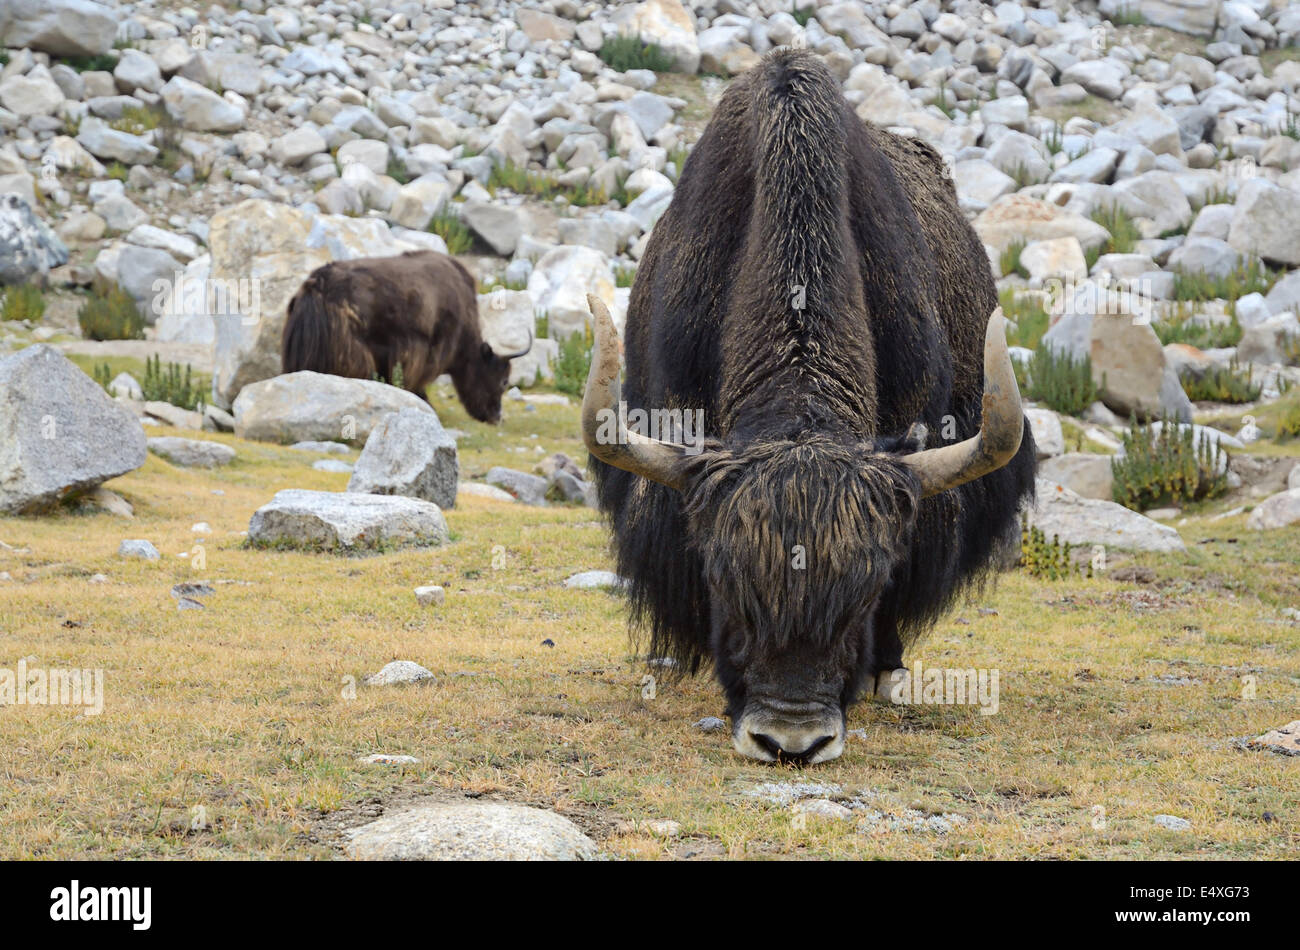 Yaks on pasture - Stock Image